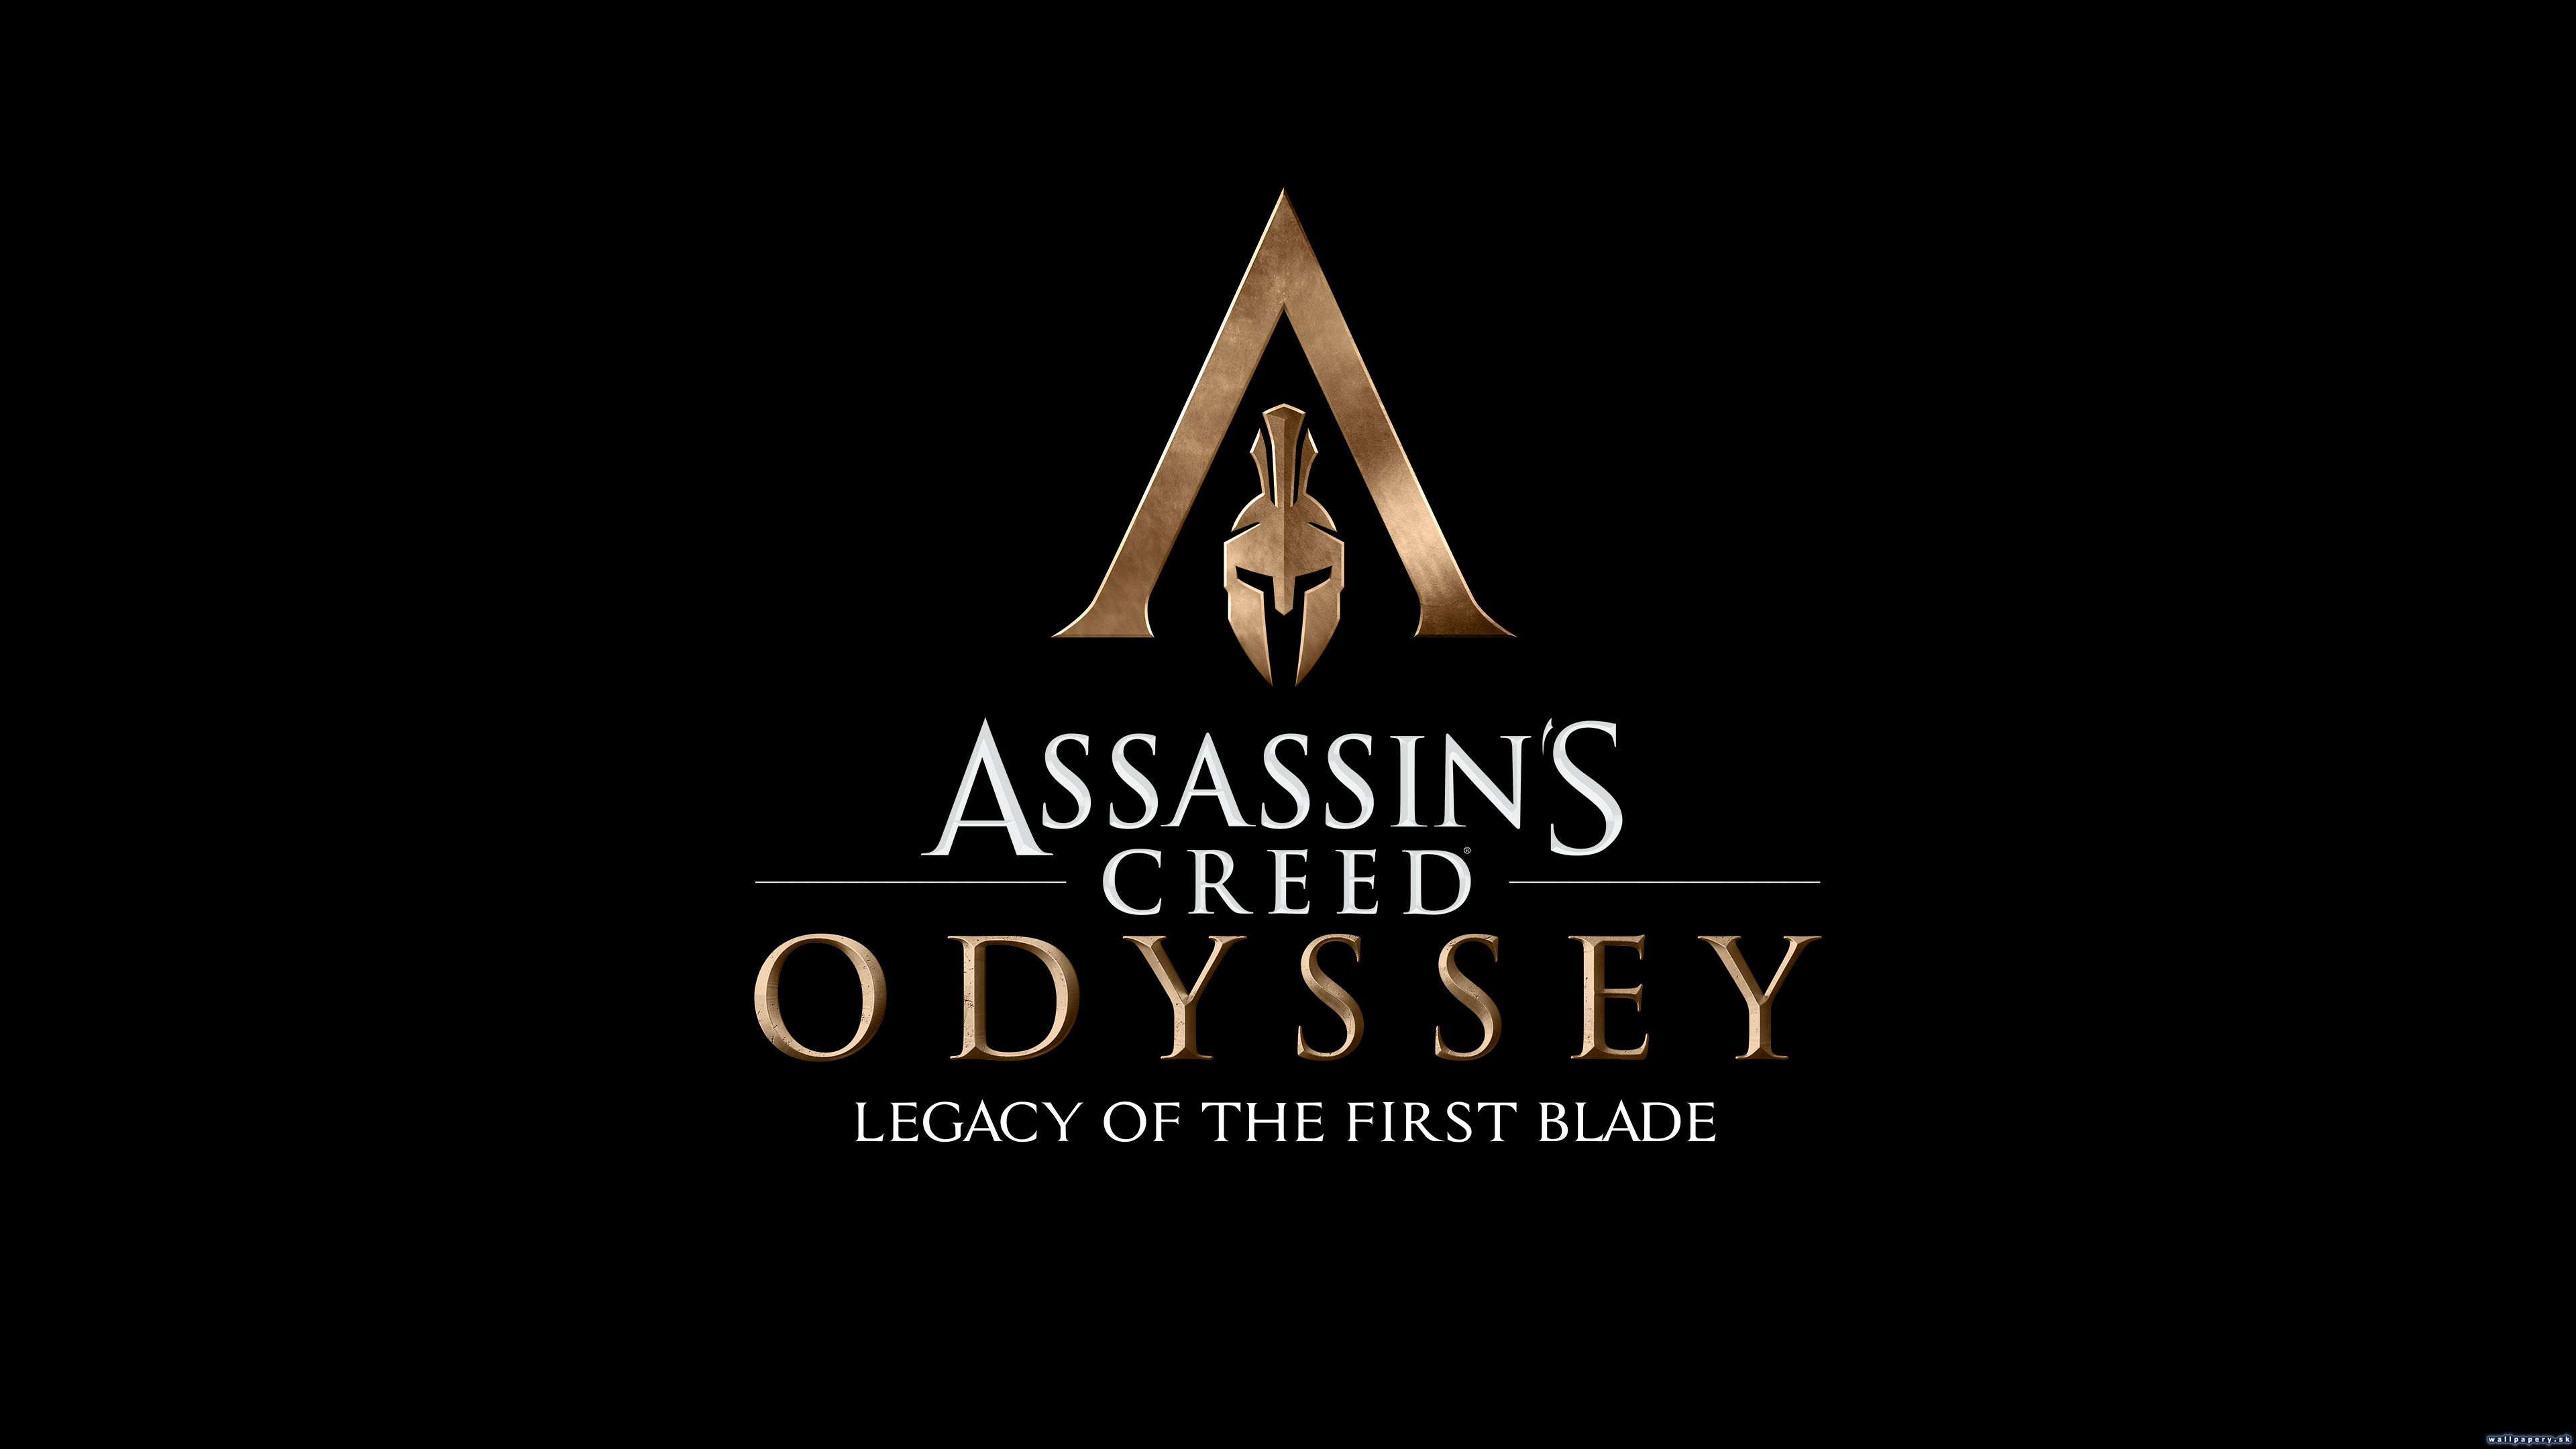 Assassin's Creed: Odyssey - Legacy of the First Blade - wallpaper 3